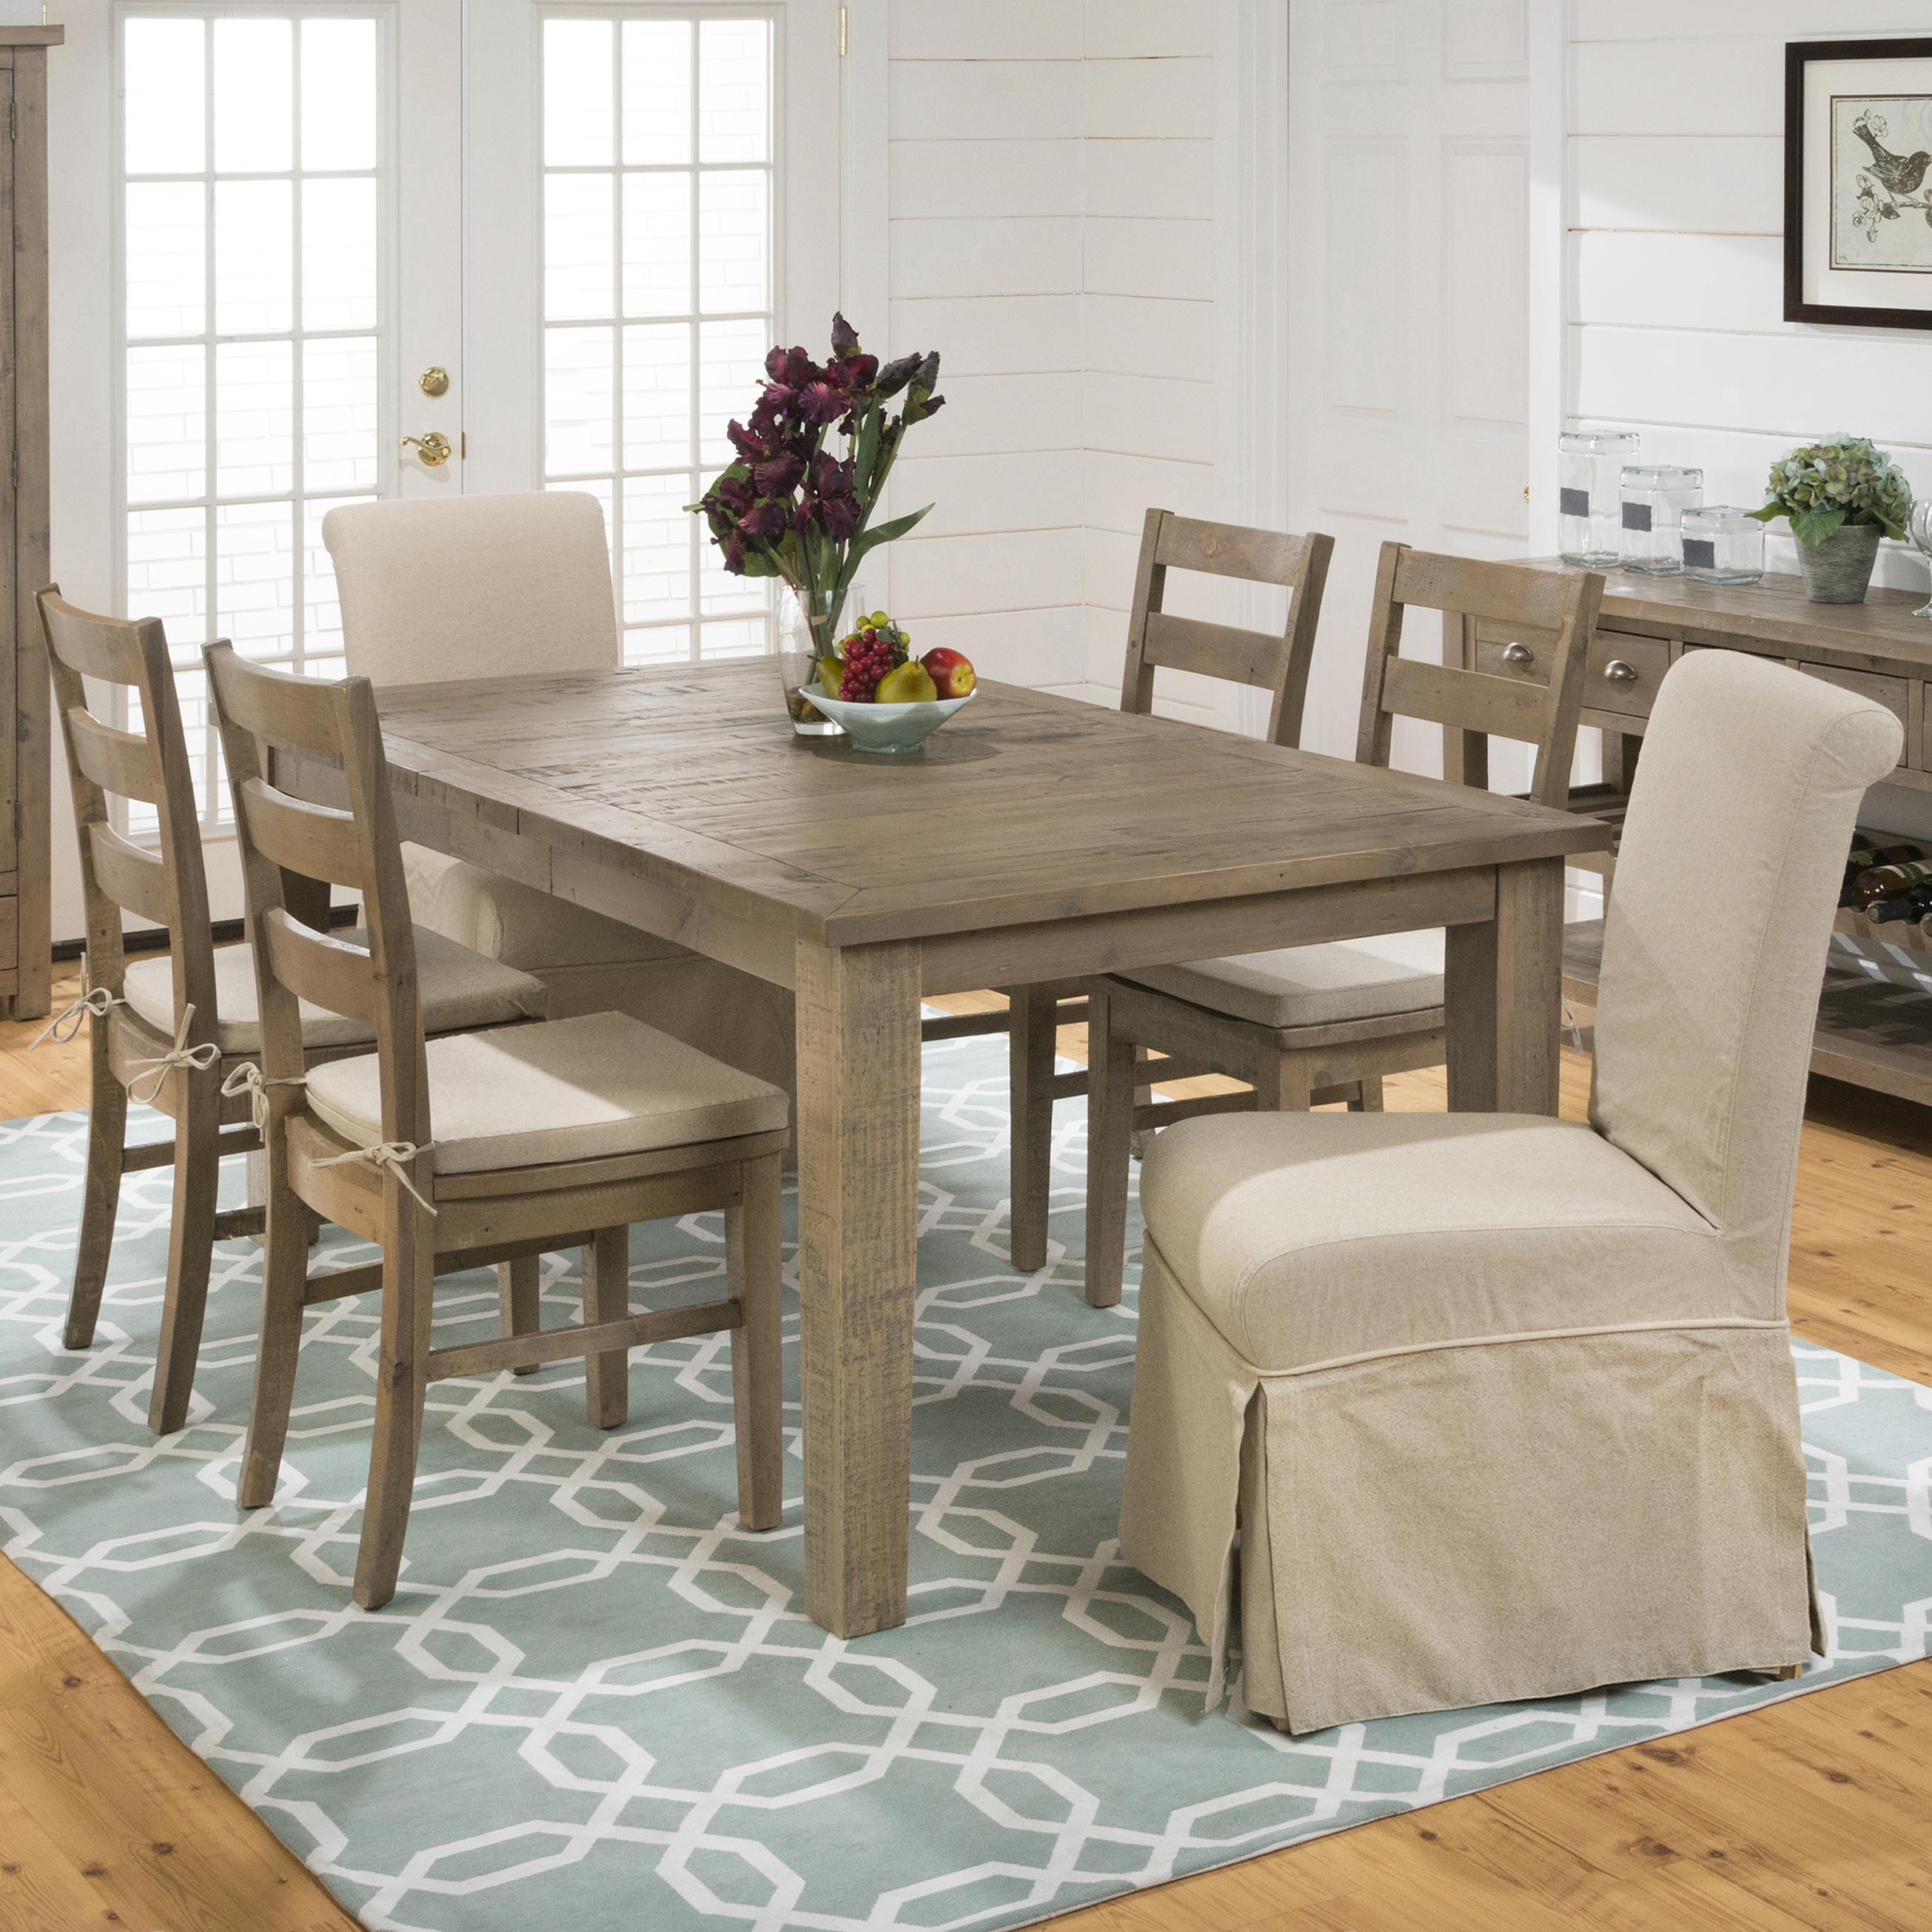 Rectangular Table, Ladderback Chair, And Slipcover Skirted Parson Chair Set